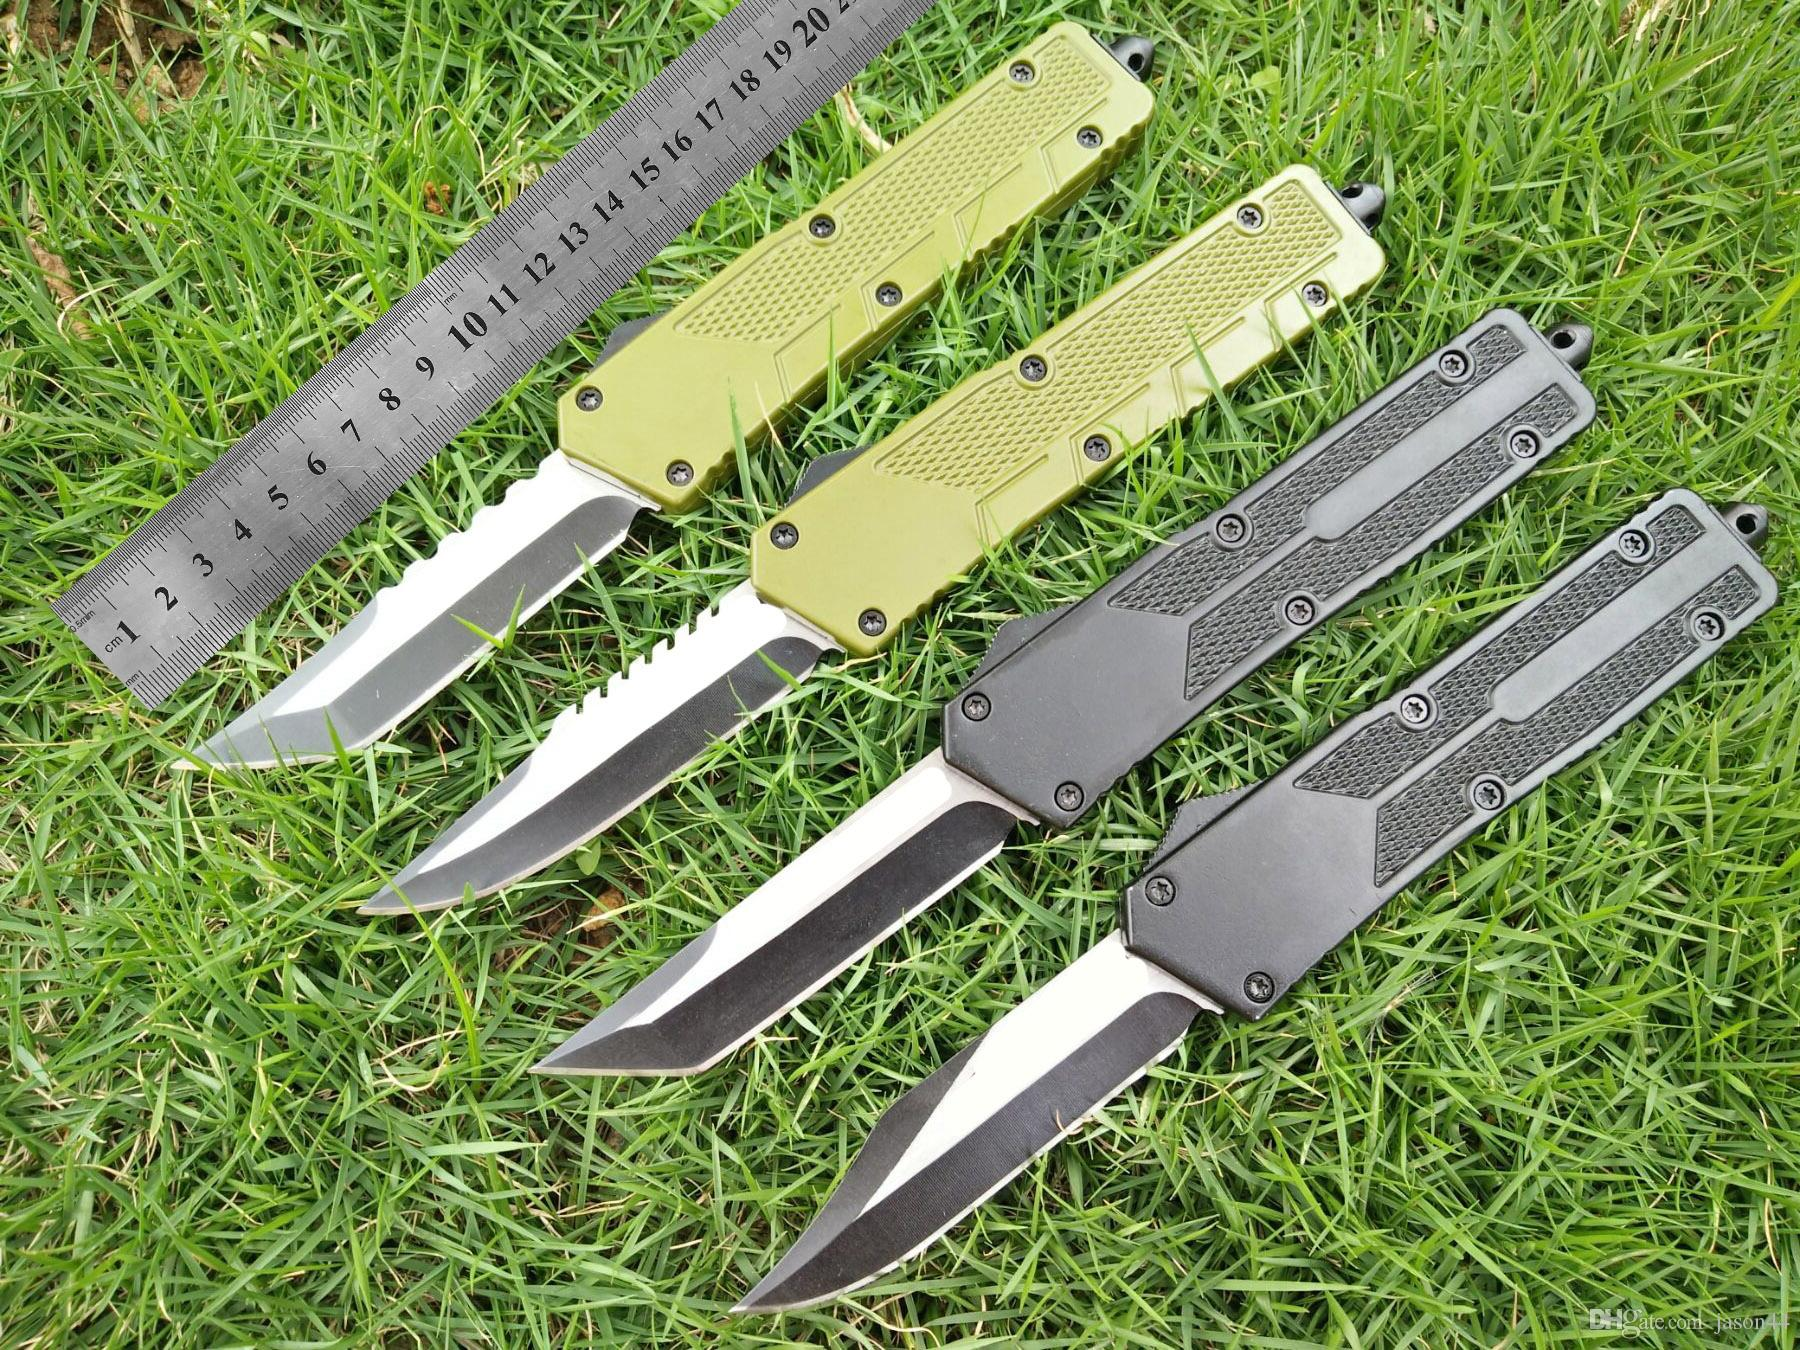 AUTO 4models new Benchmade BM3300 BM3500 A07 UTX85 combat knives Double action clip camping cutting tool folding tactical EDC pocket knife